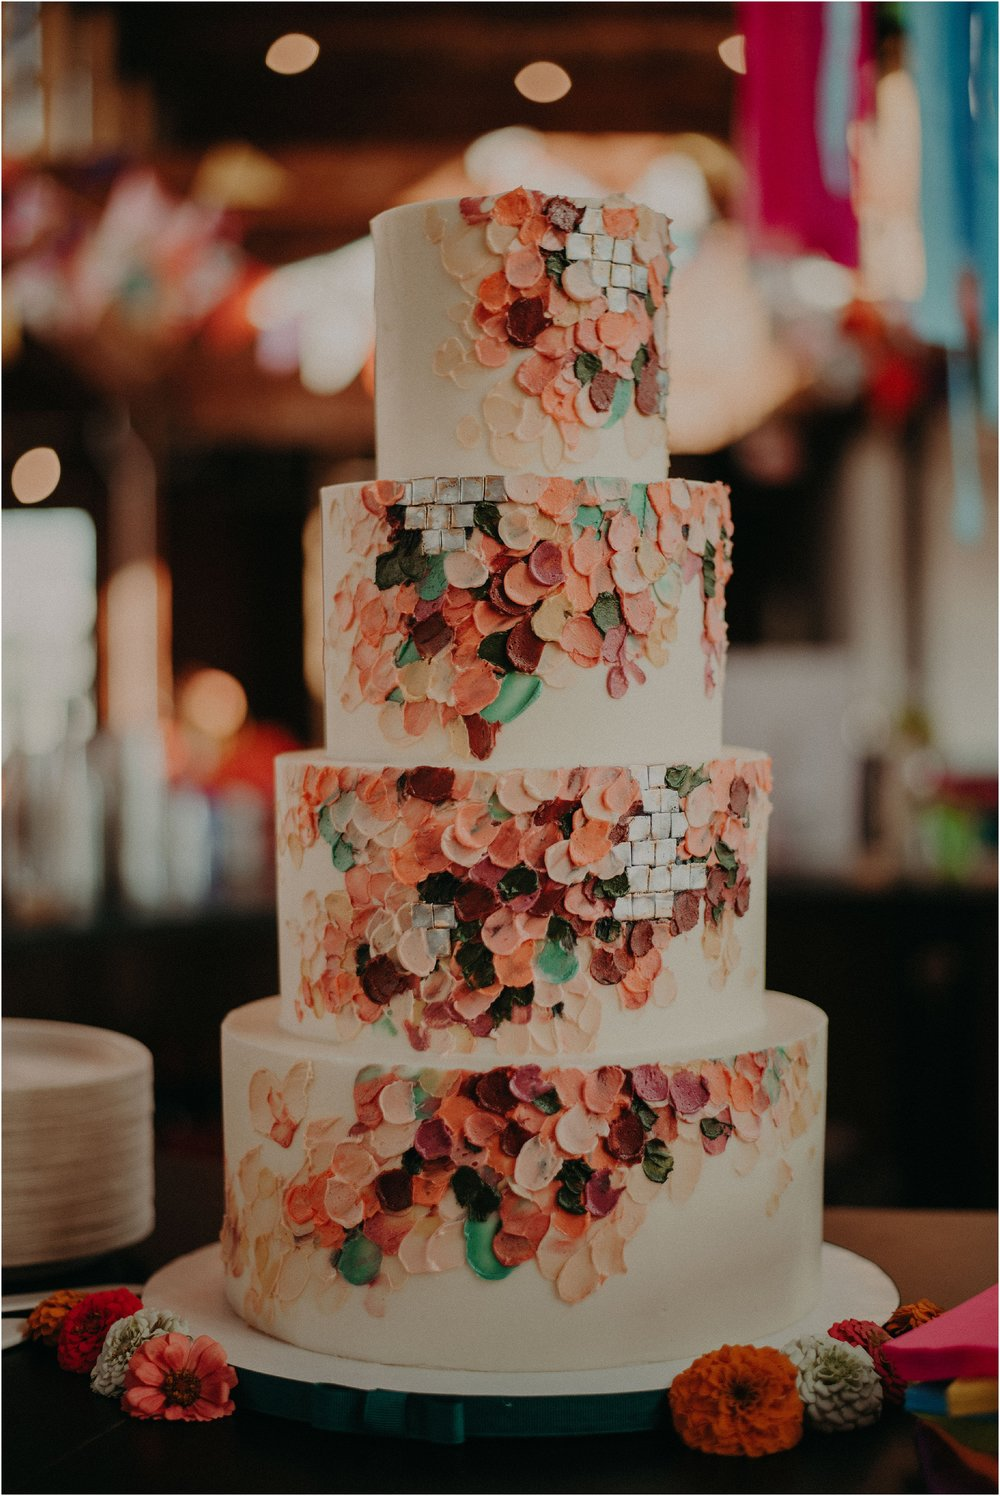 Art deco inspired wedding cake design by Yellow Cake Company in Chattanooga, TN